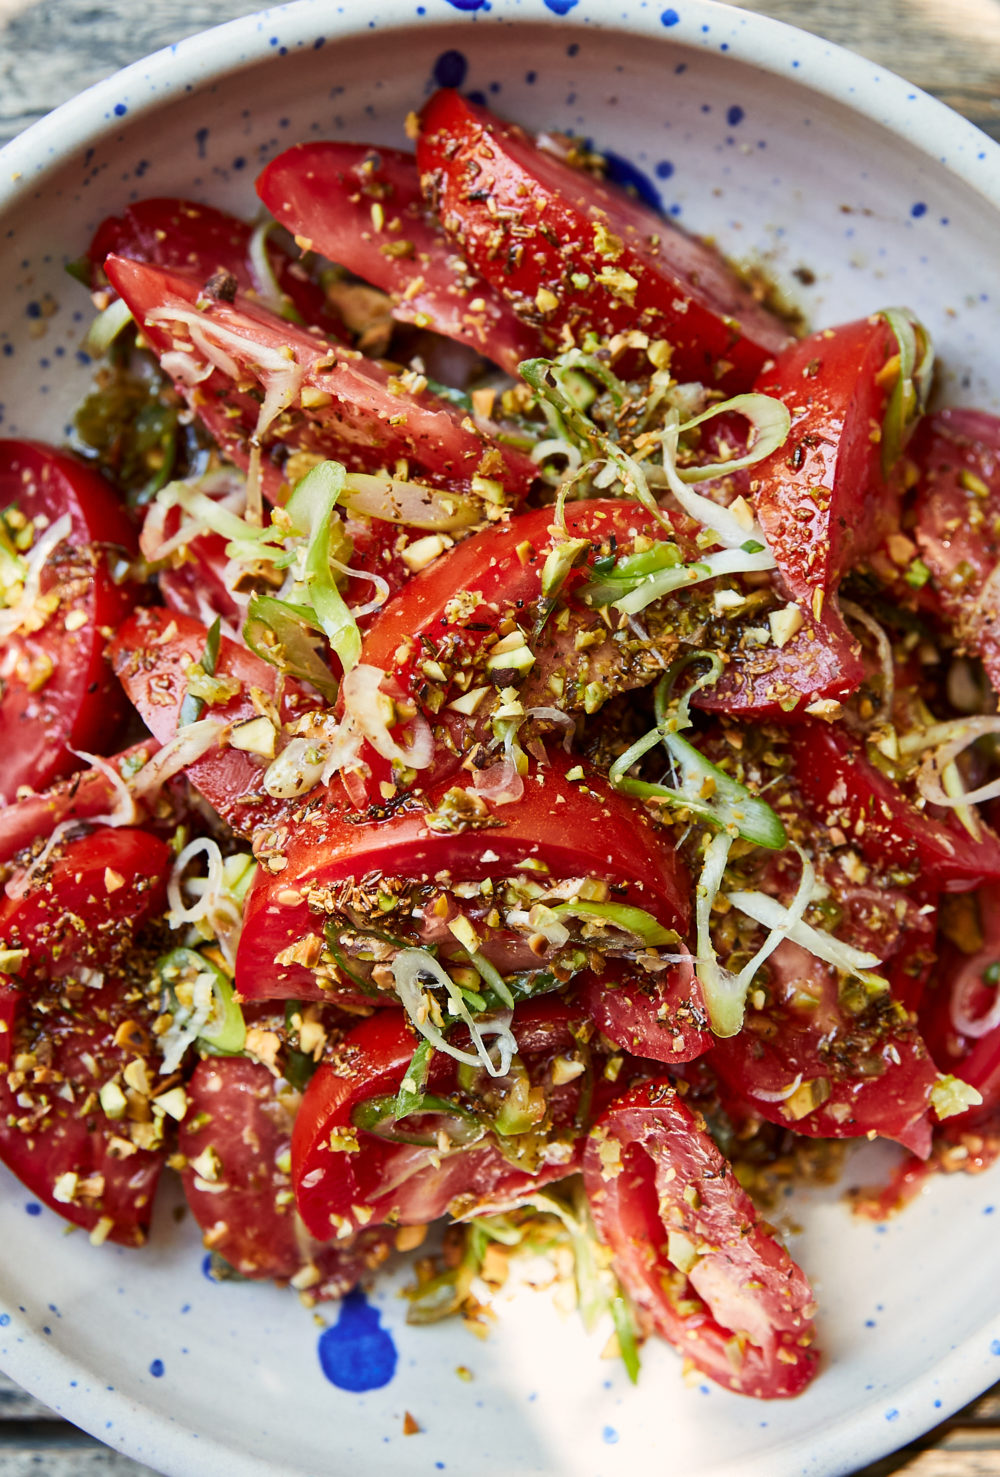 Close-up photo of tomato salad with fresh scallions in a bowl with blue speckles.